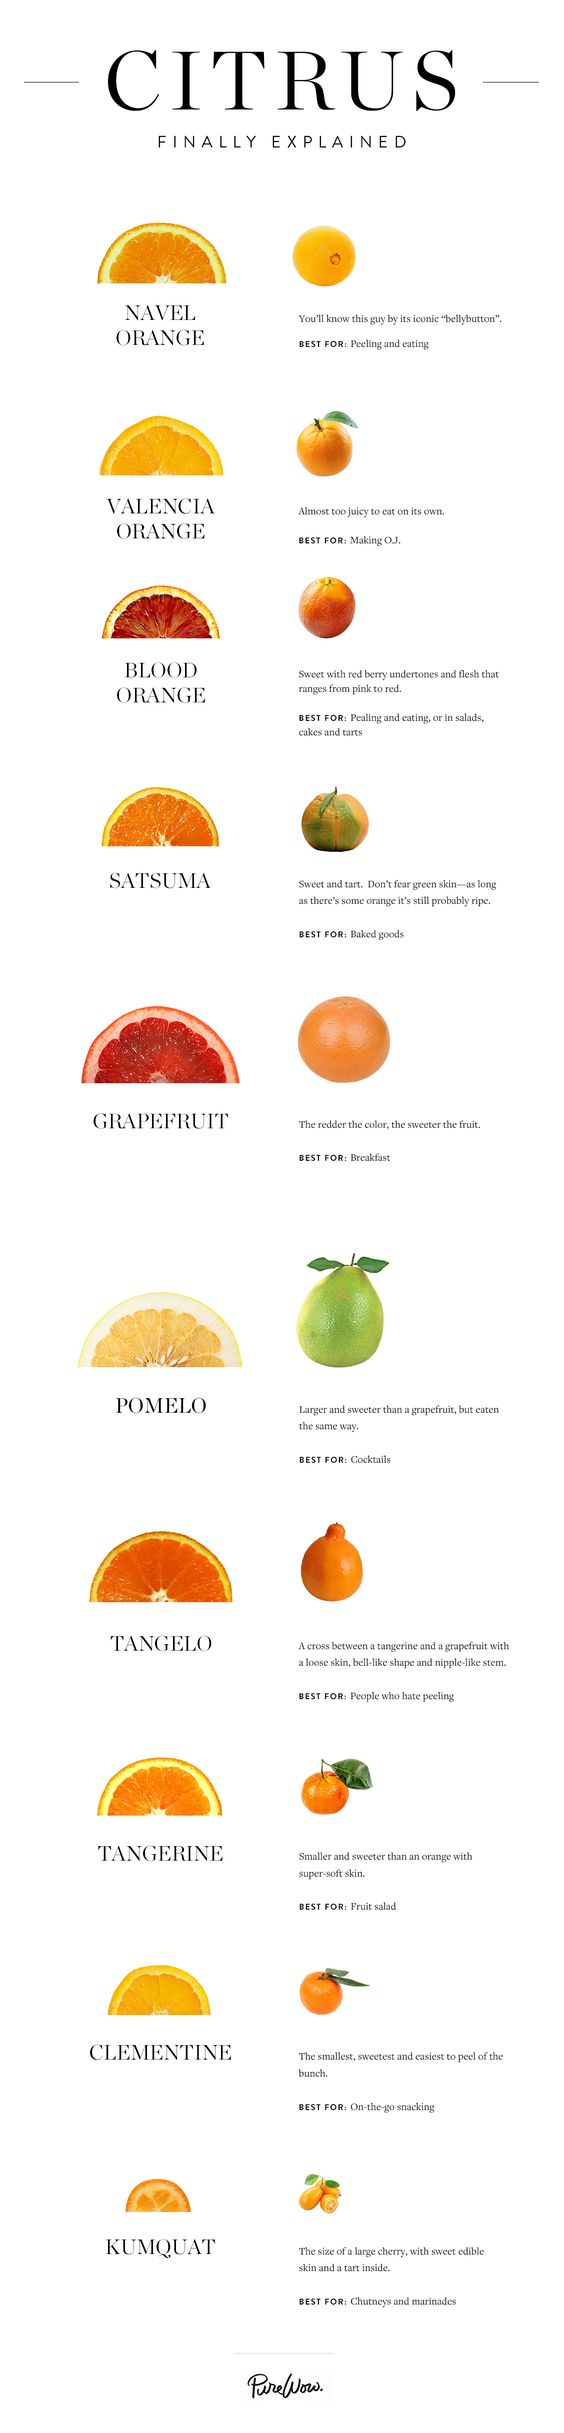 All the Winter Citrus Finally Explained. Uhh, what's the difference between a tangelo and a pomelo again?: